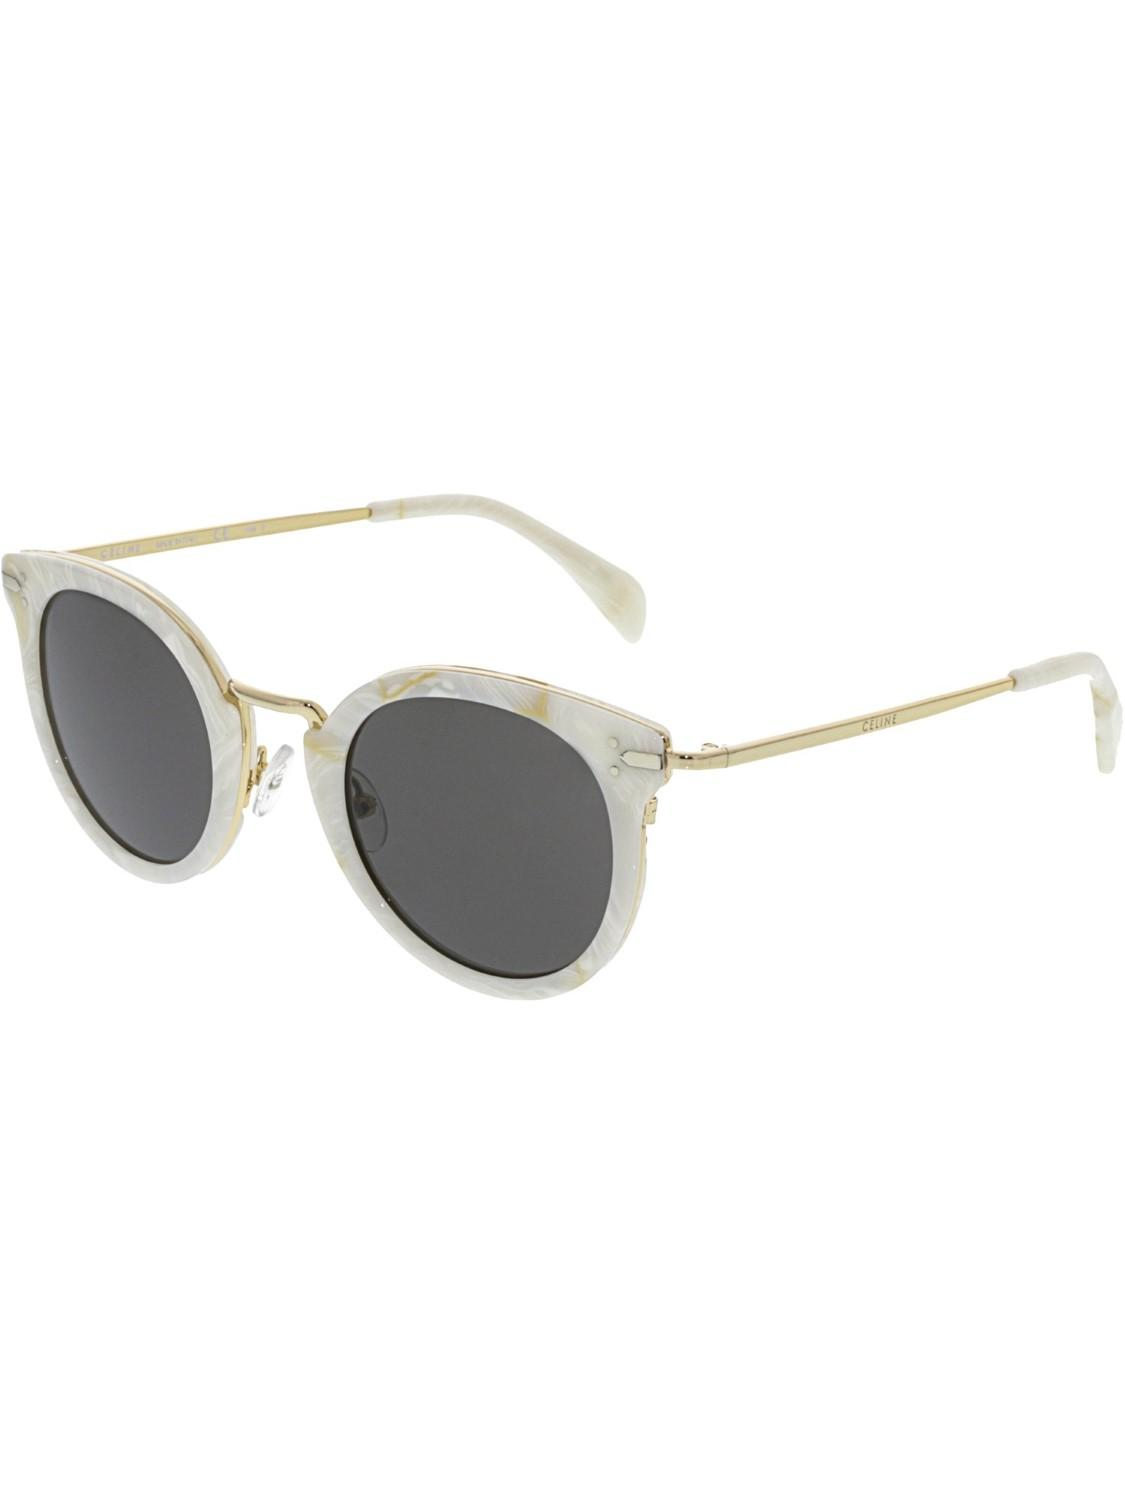 02f5a3de5e9e Lyst - Céline Cl41373s-23f-48 White Oval Sunglasses in White - Save 28%